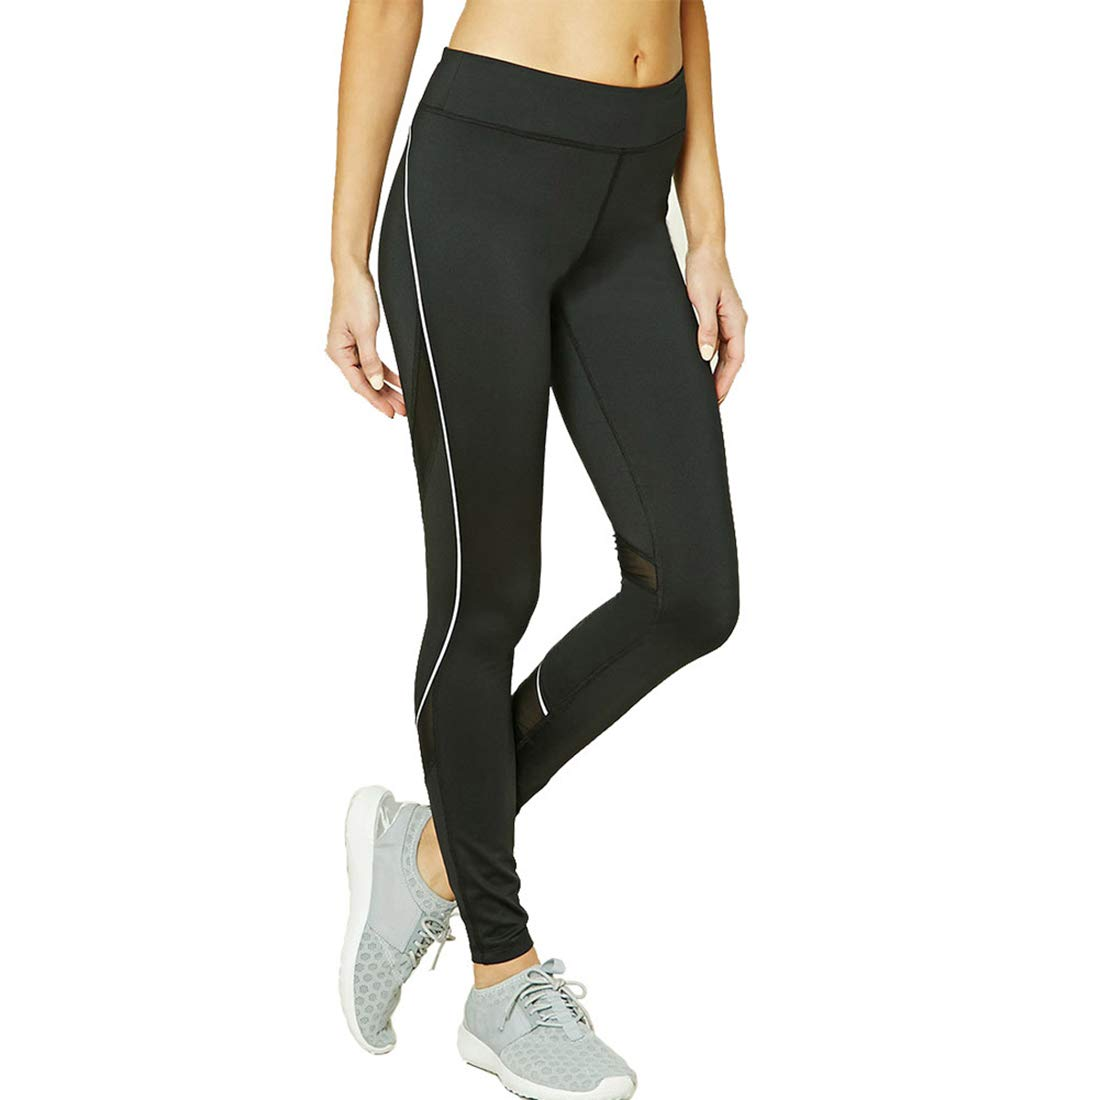 KEVIN POOLE Yoga Pants Casual Tight Fitness Pants Female Leggins for Womens (Size   XL)